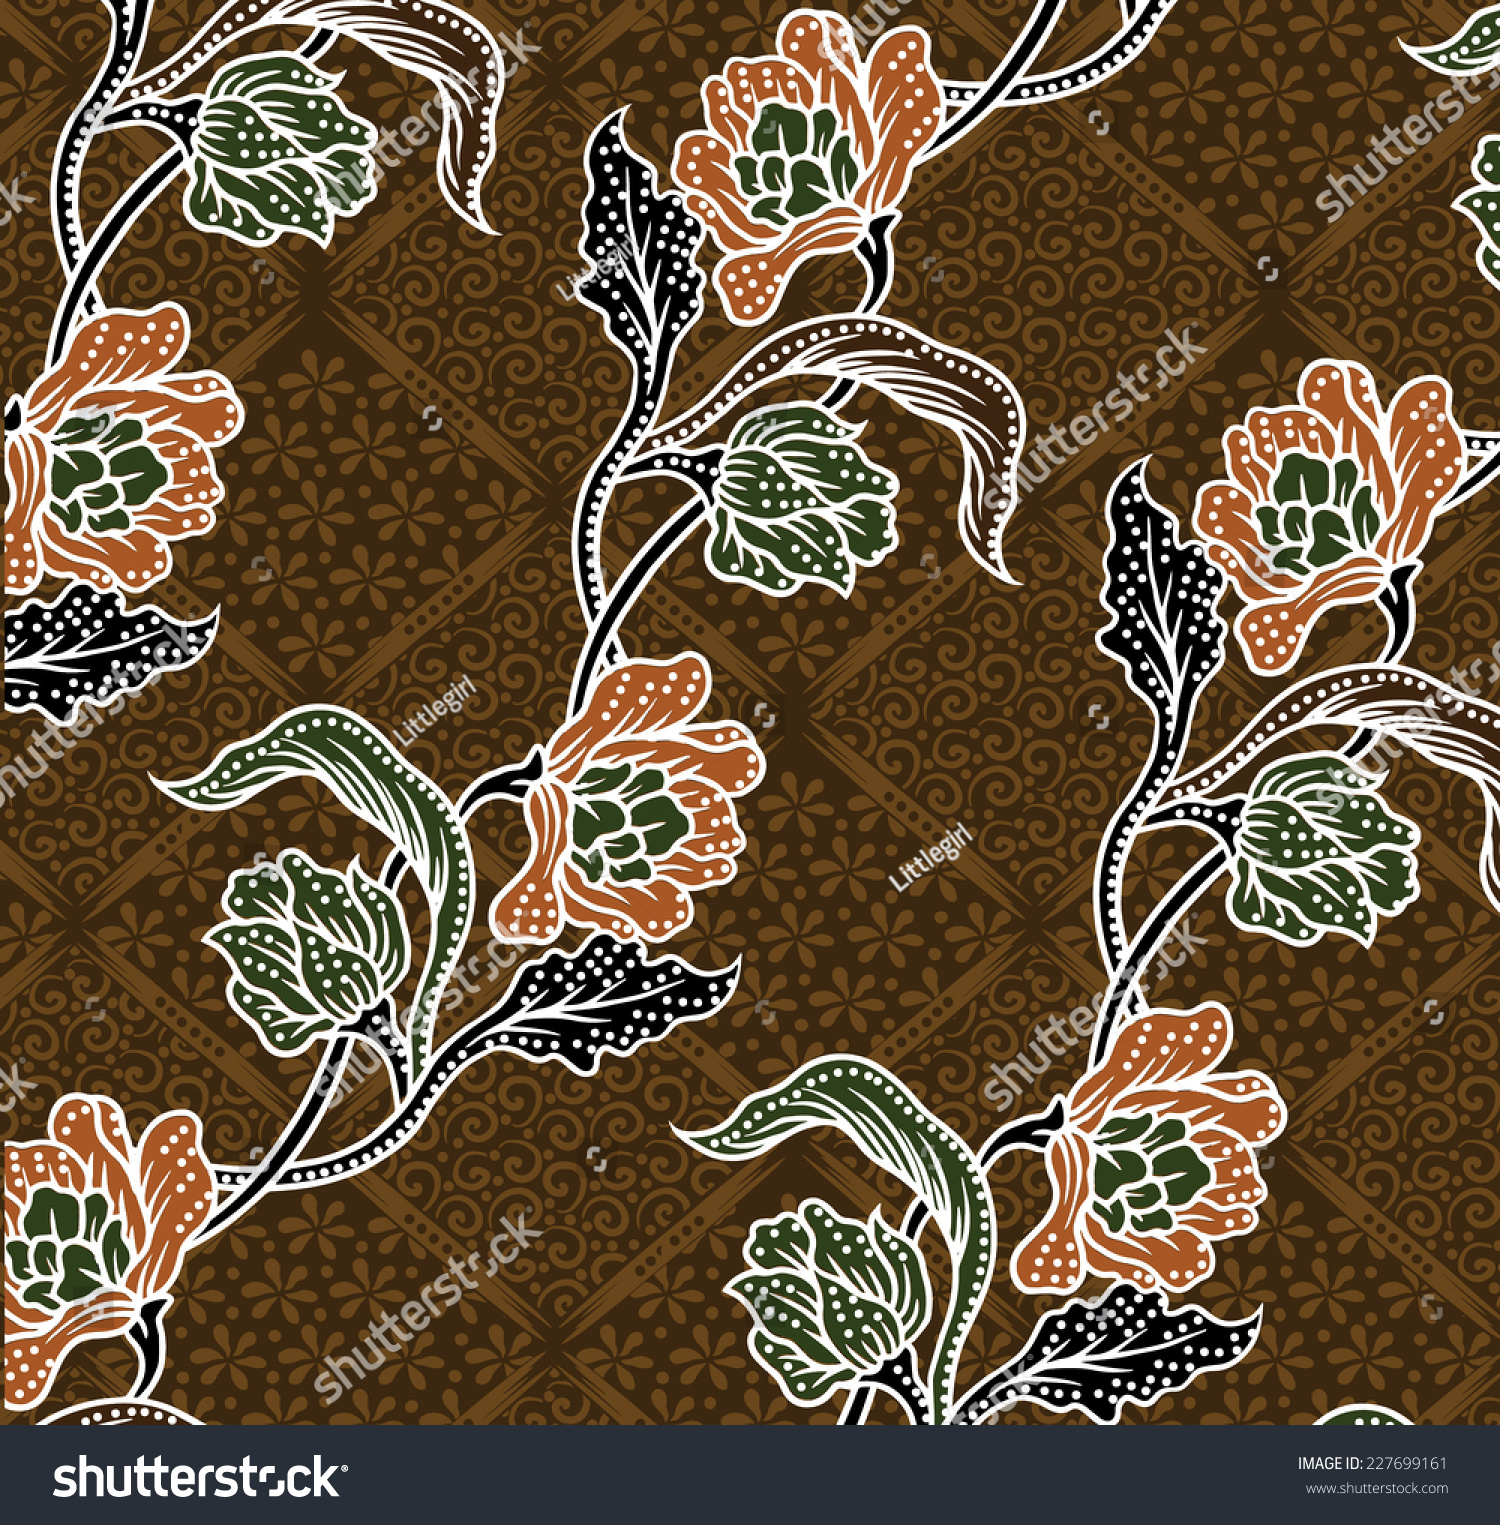 Batik Floral Patterndesign Fabric Stock Vector 227699161